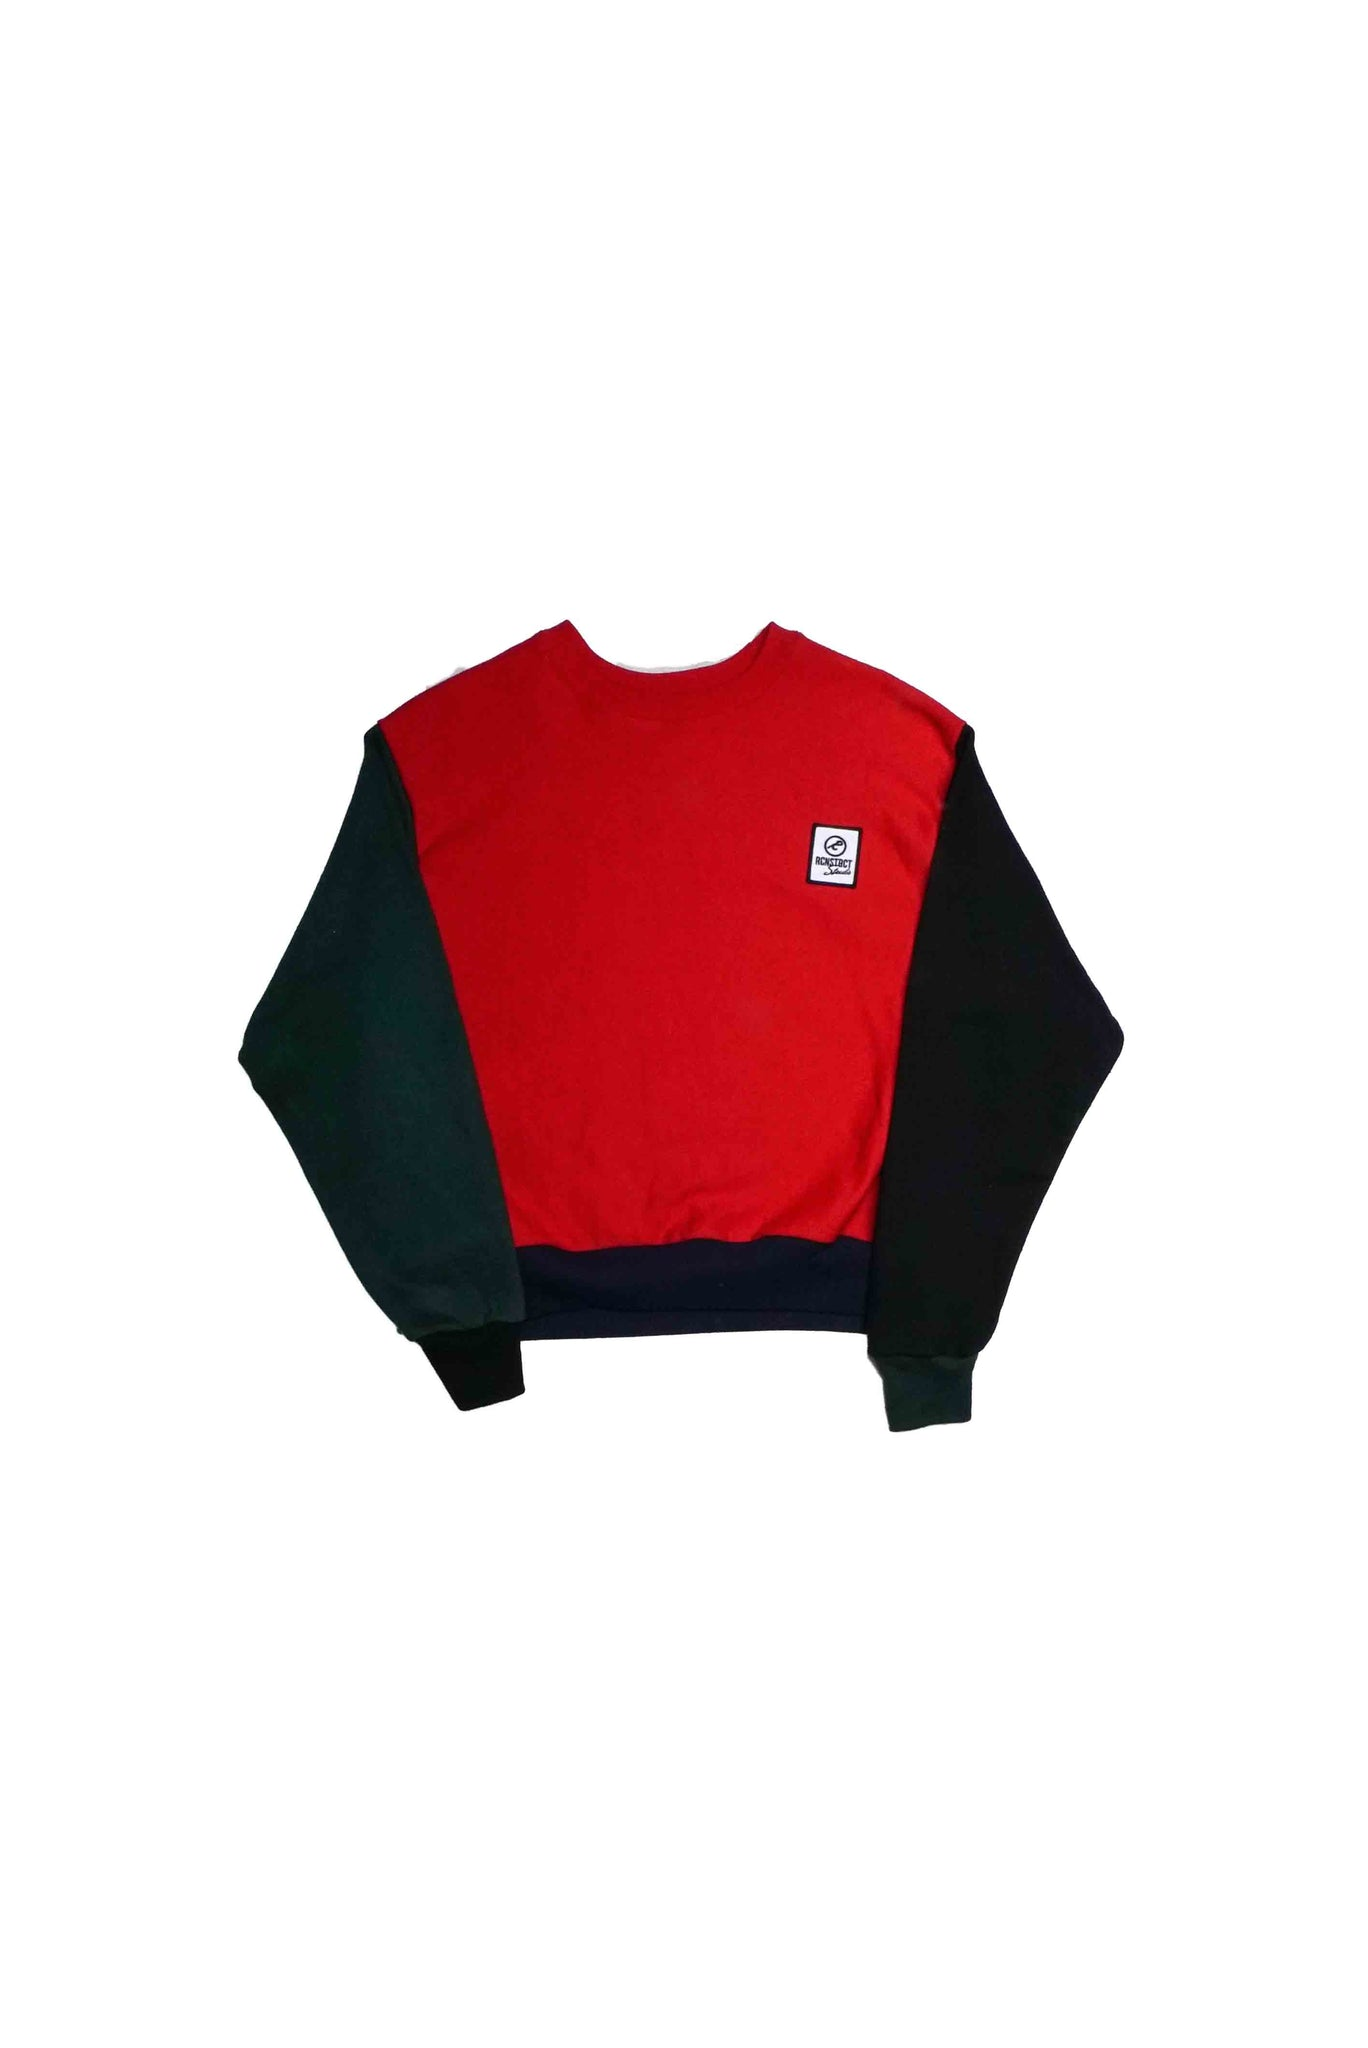 CHAMPION X RCNSTRCT CREW NECK 2